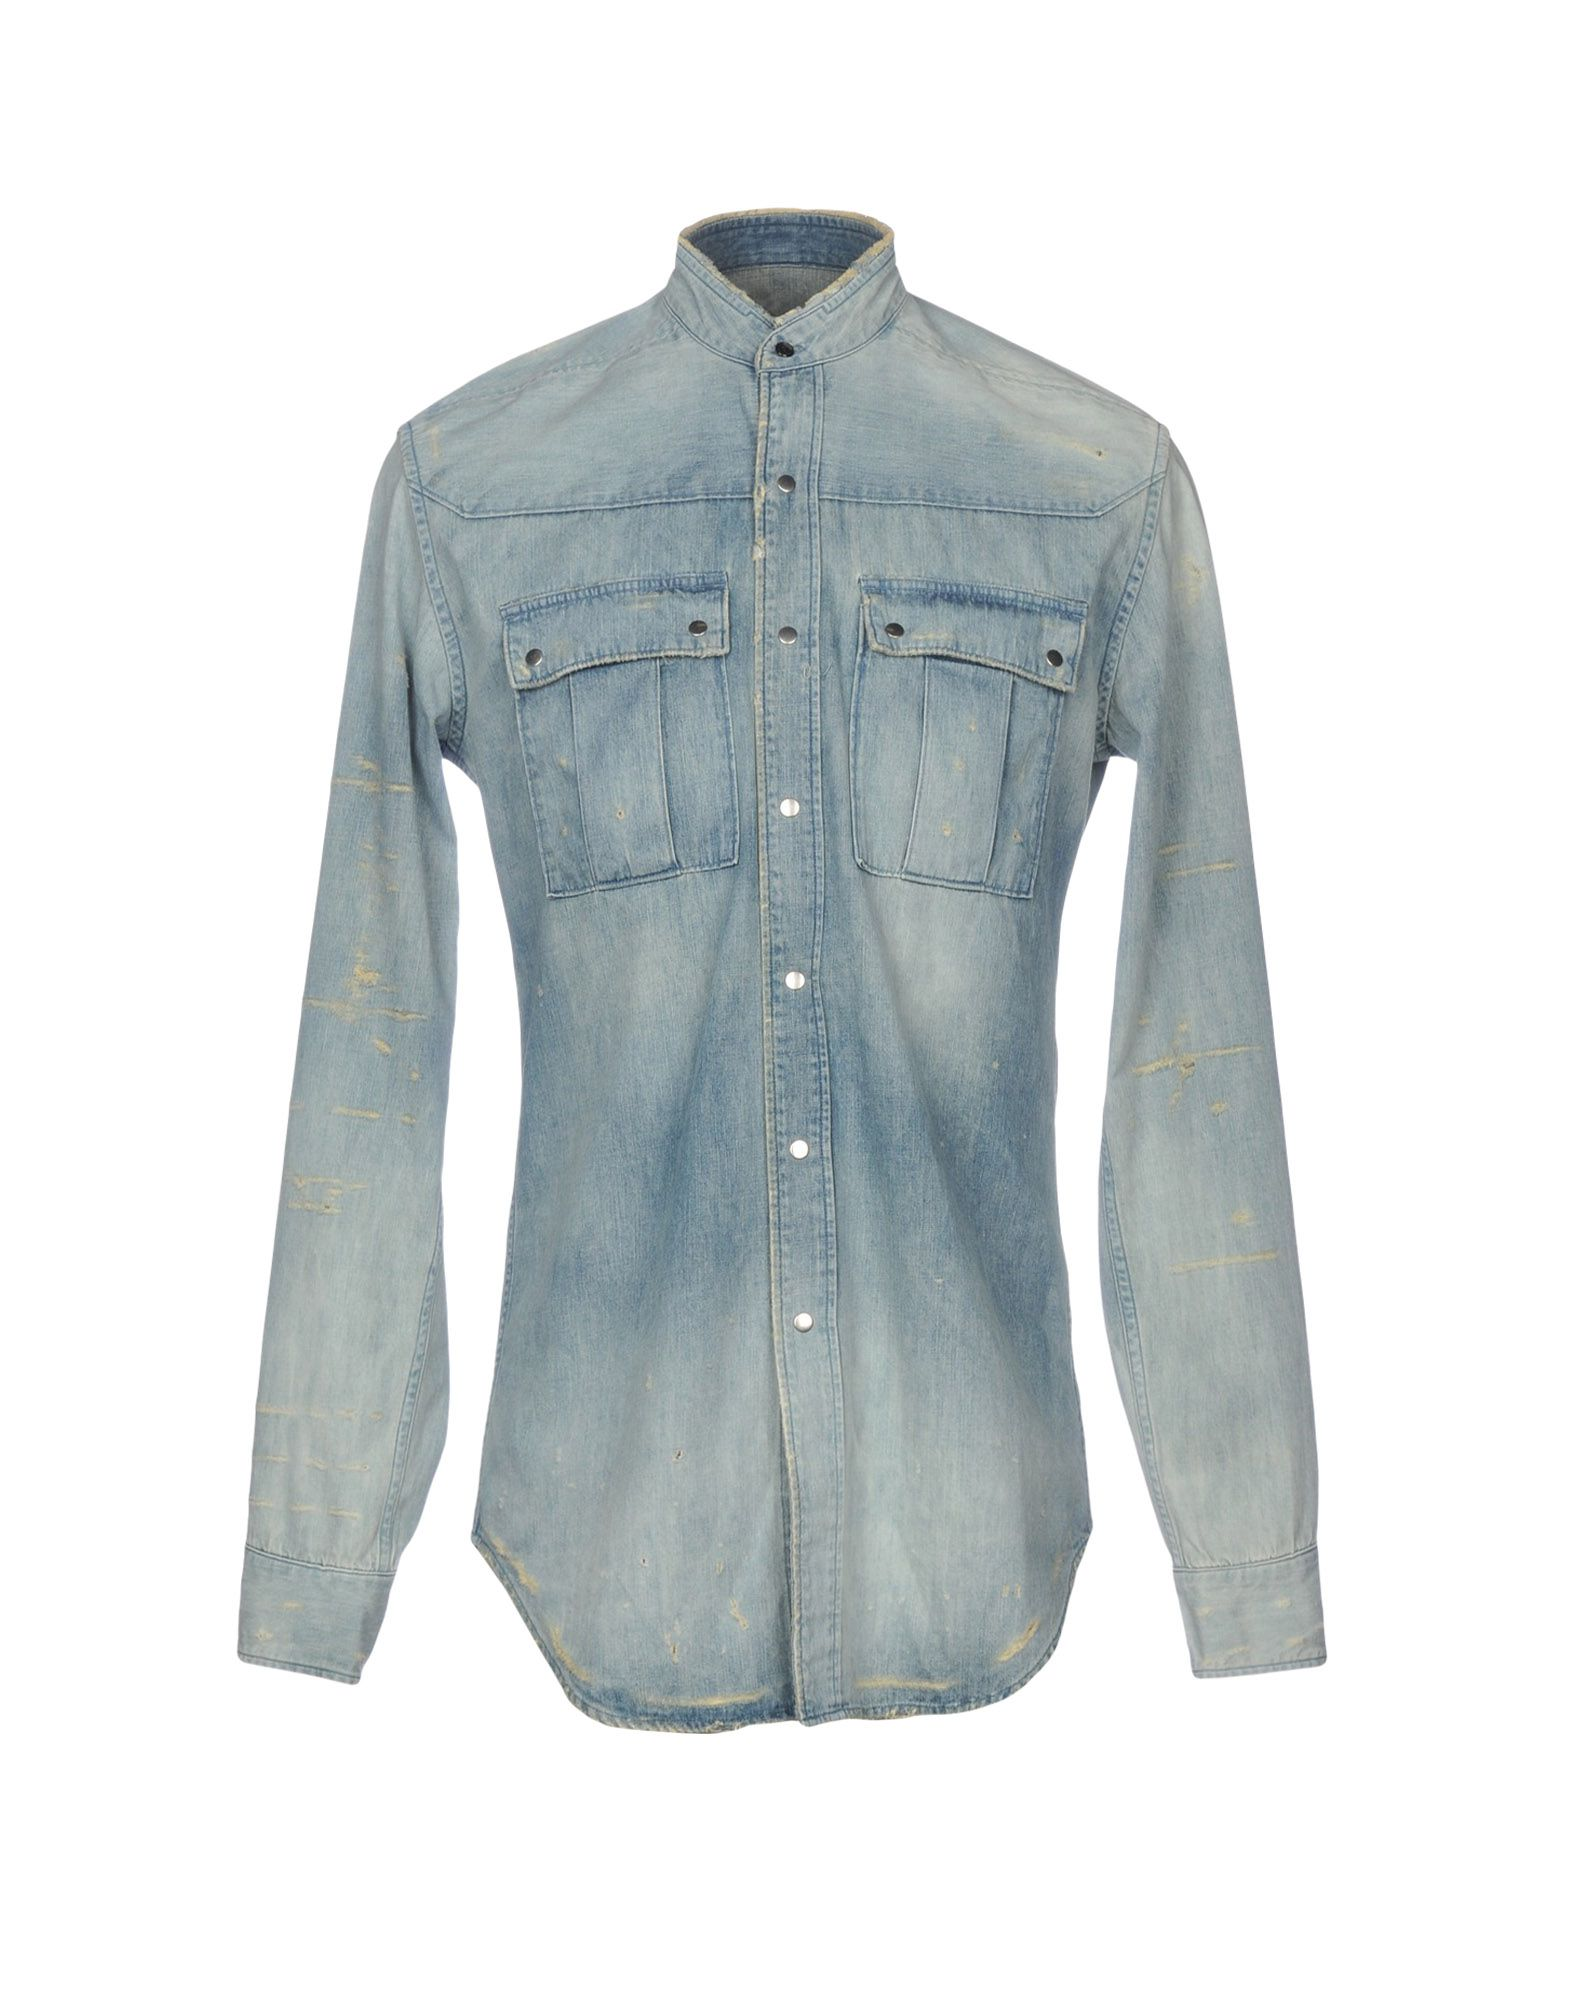 0997ccf7 Balmain Denim Shirt - Men Balmain Denim Shirts online on YOOX ...